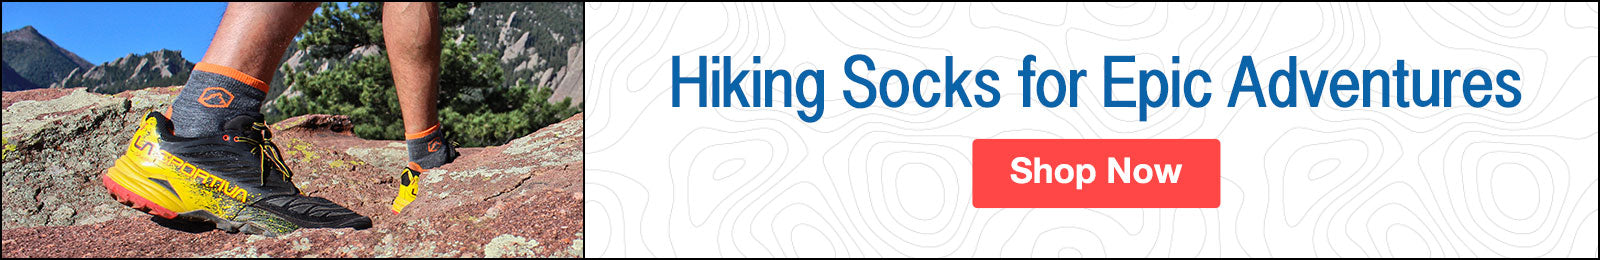 CloudLine Hiking Socks are Ready for All Your Summer Adventures. Shop Now!